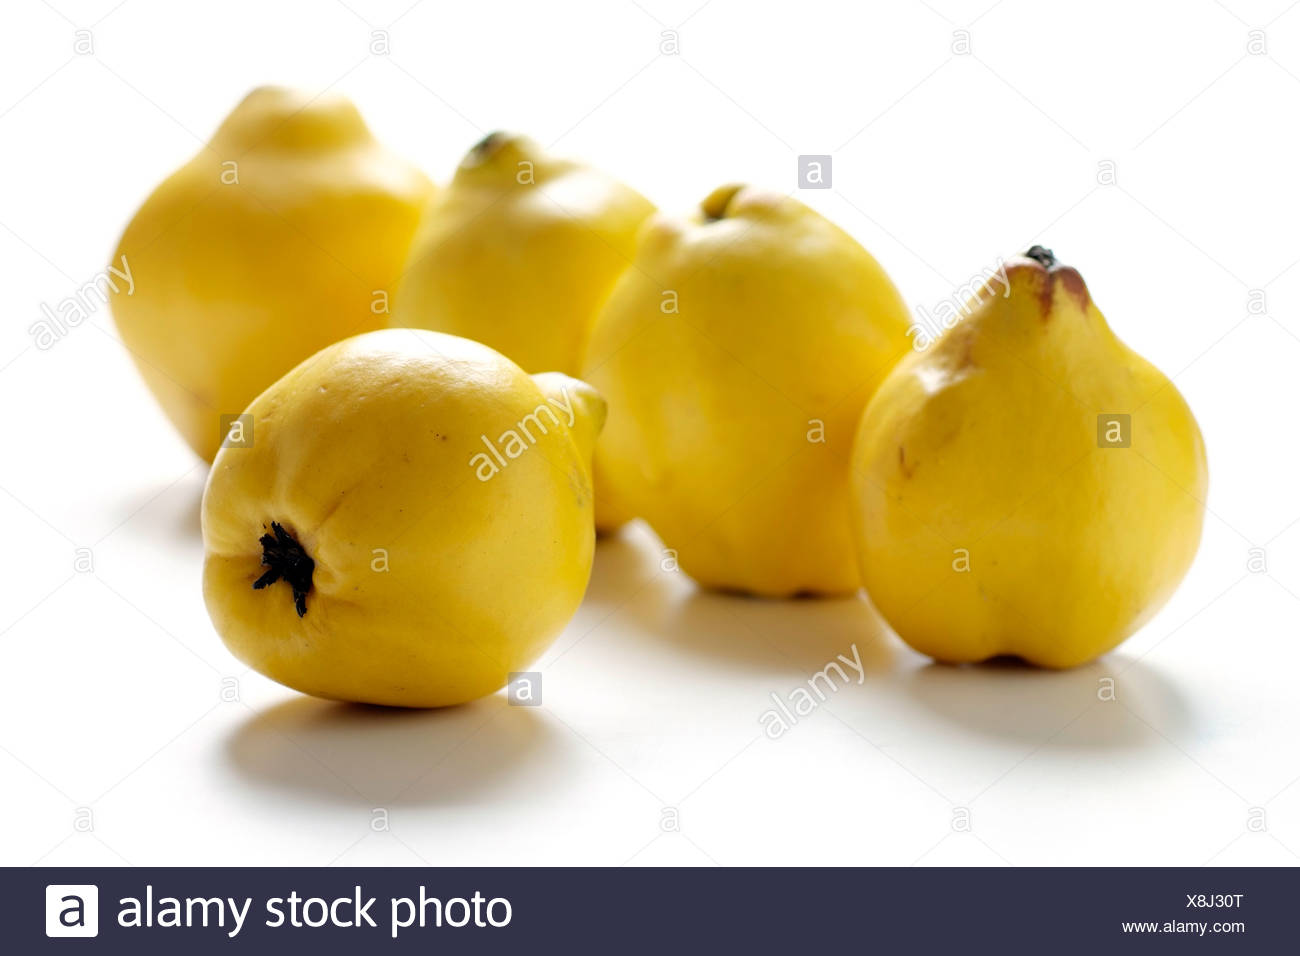 Five whole quinces - Stock Image